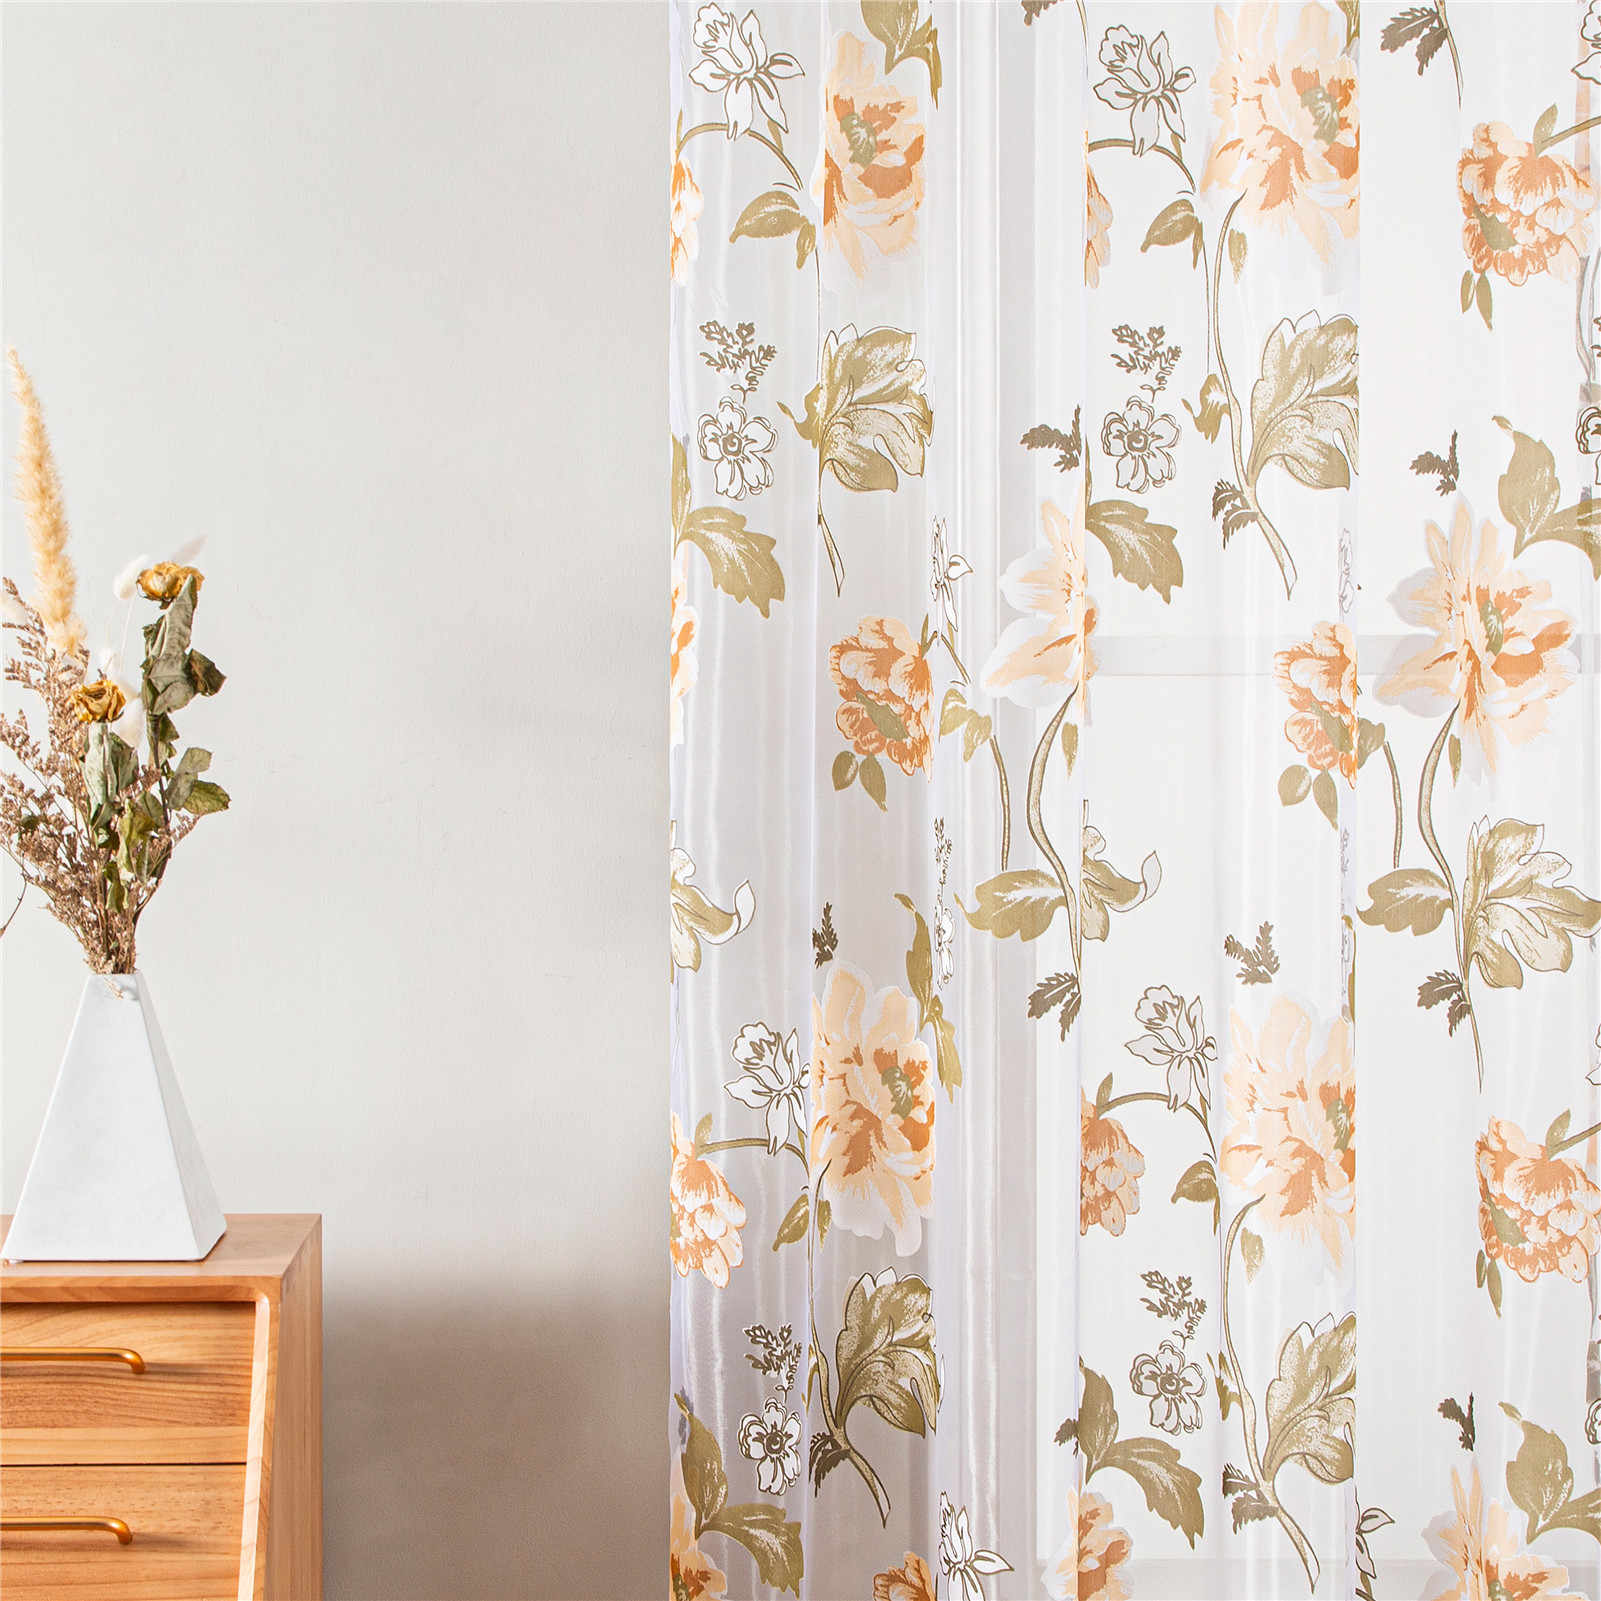 Top Finel Floral Sheer Window Curtains For Kitchen Living Room Bedroom Tulle Curtains Drapery Home Decor Room Divider 1 Panel Sheer Window Curtain Curtains Forwindow Curtains Aliexpress